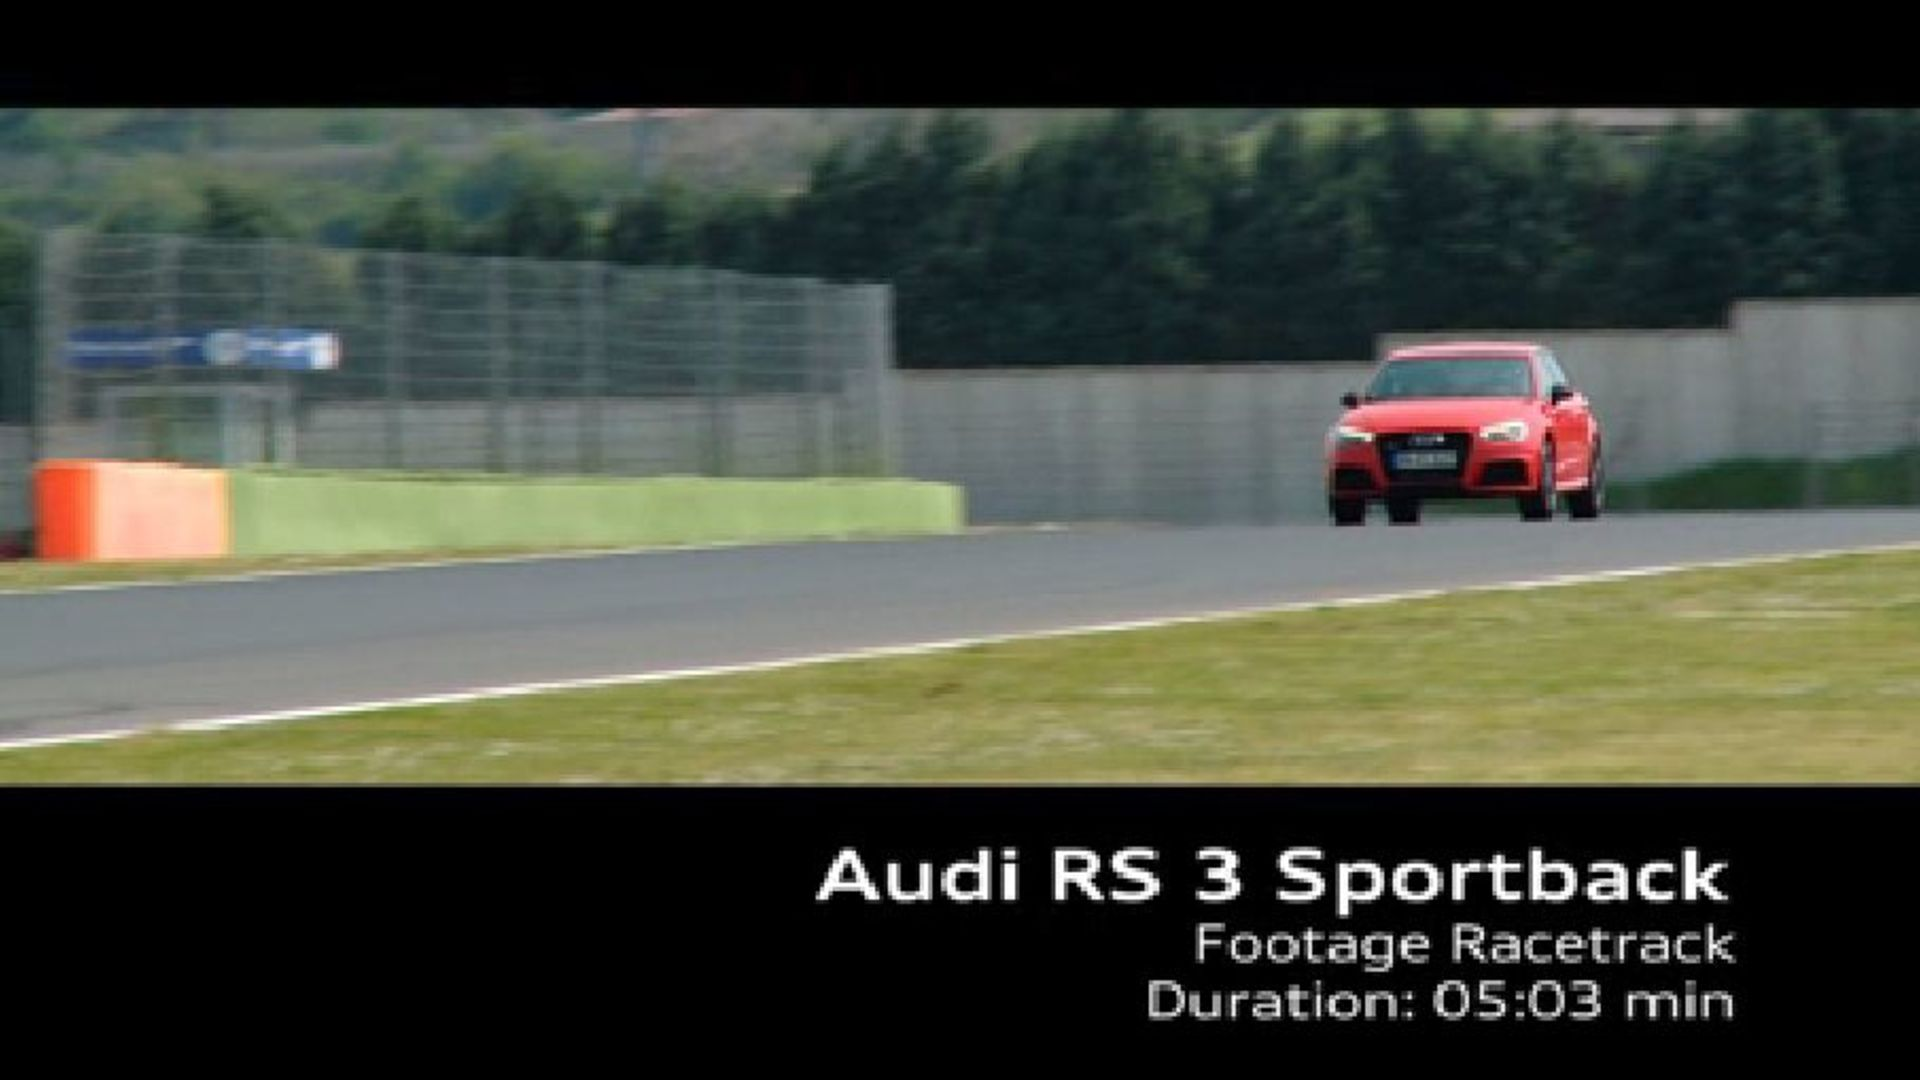 The Audi RS 3 Sportback – Footage racetrack